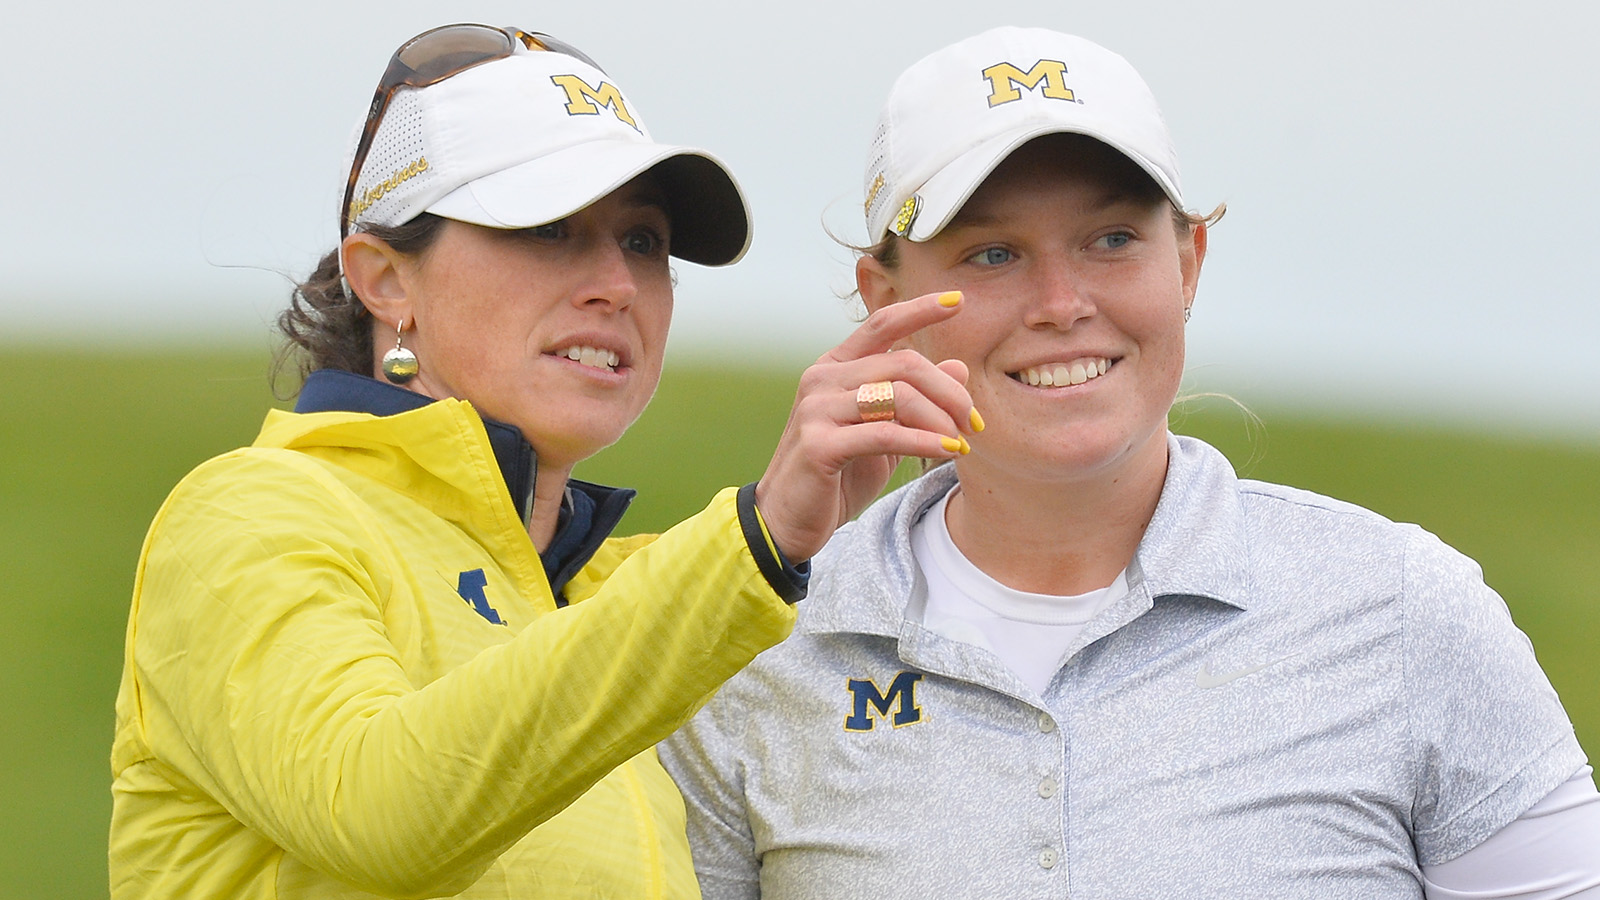 ... the University of Michigan women s golf team faced a challenging  nine-tournament schedule and closed the season with a seventh-place finish  at the Big ... a19d05889